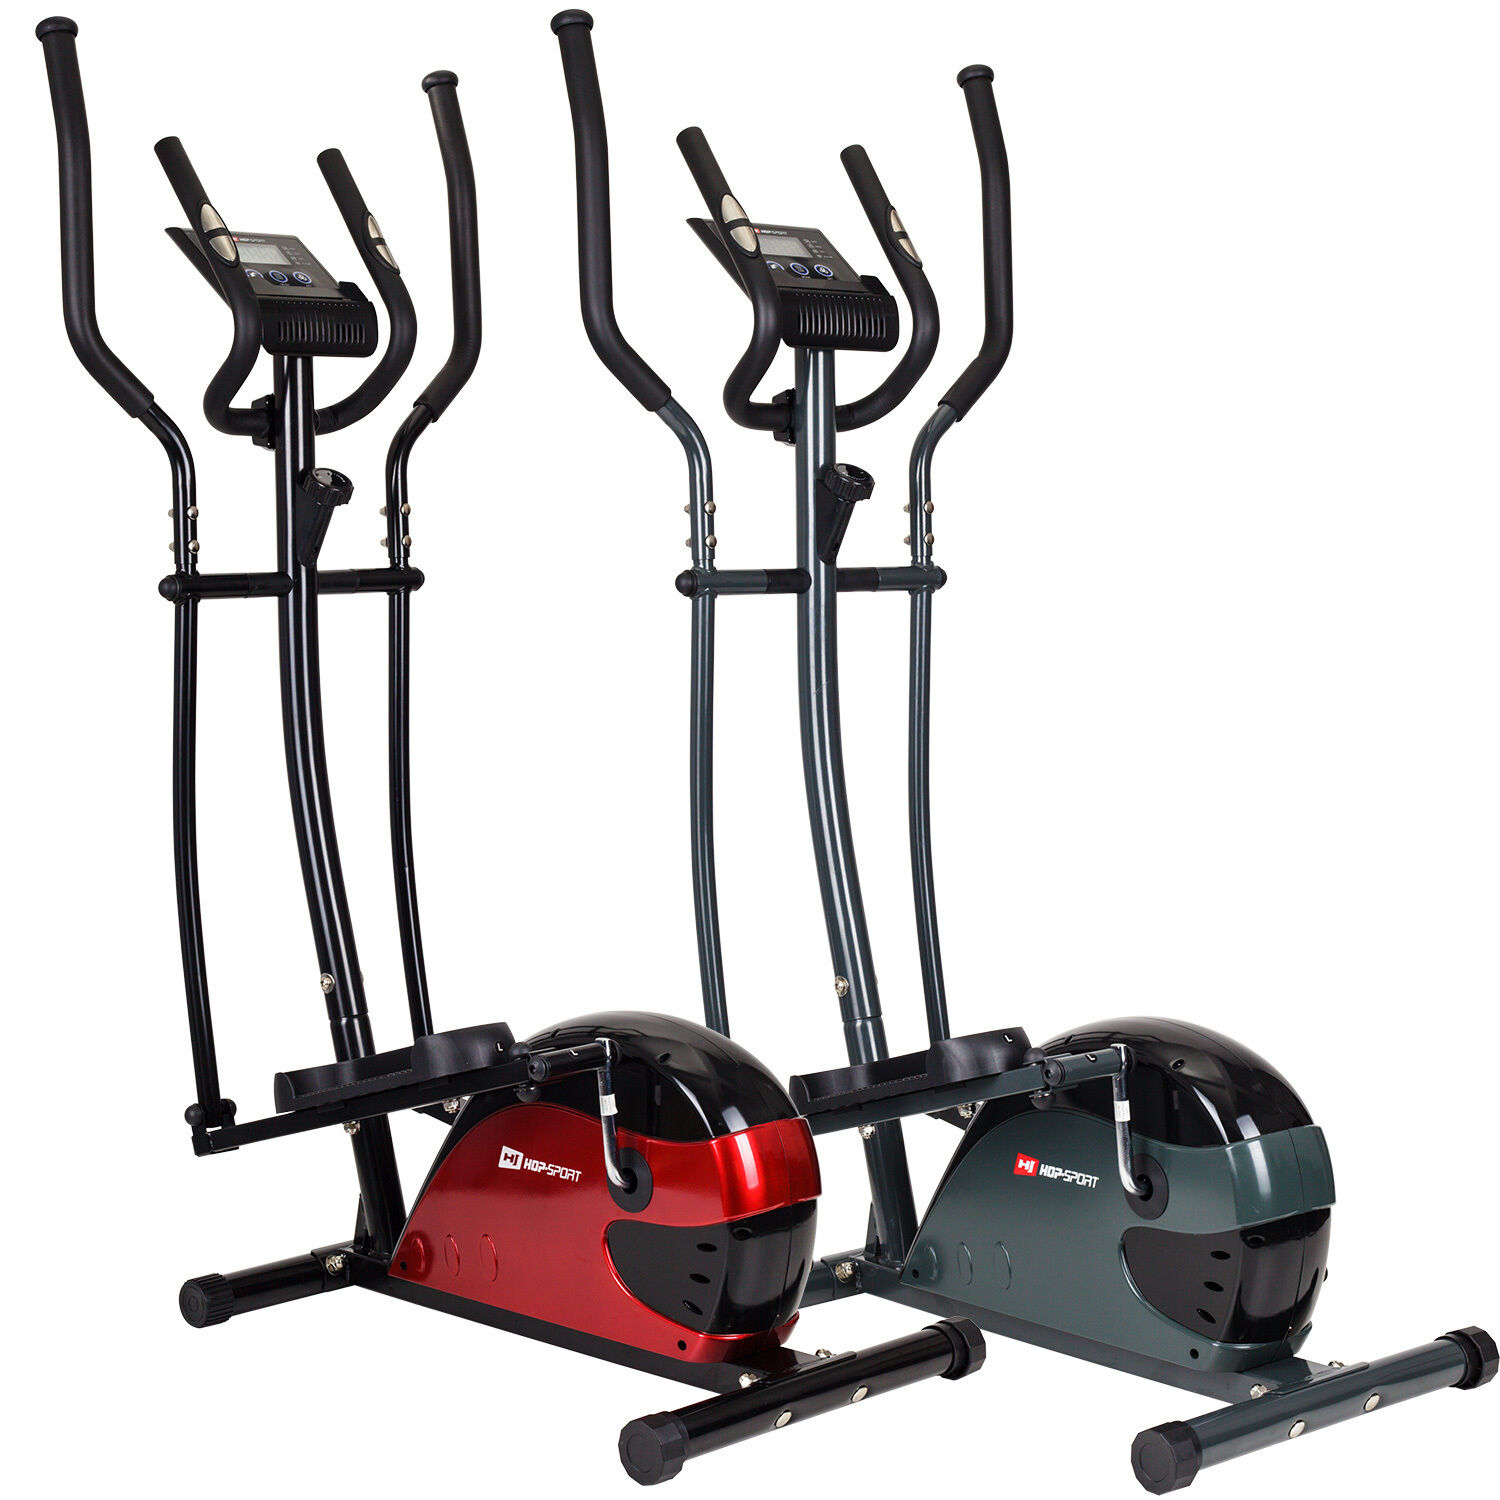 Hop-Sport Crosstrainer HS-4030 Nordic Walking Stepper Ellipsentrainer bis 120 kg